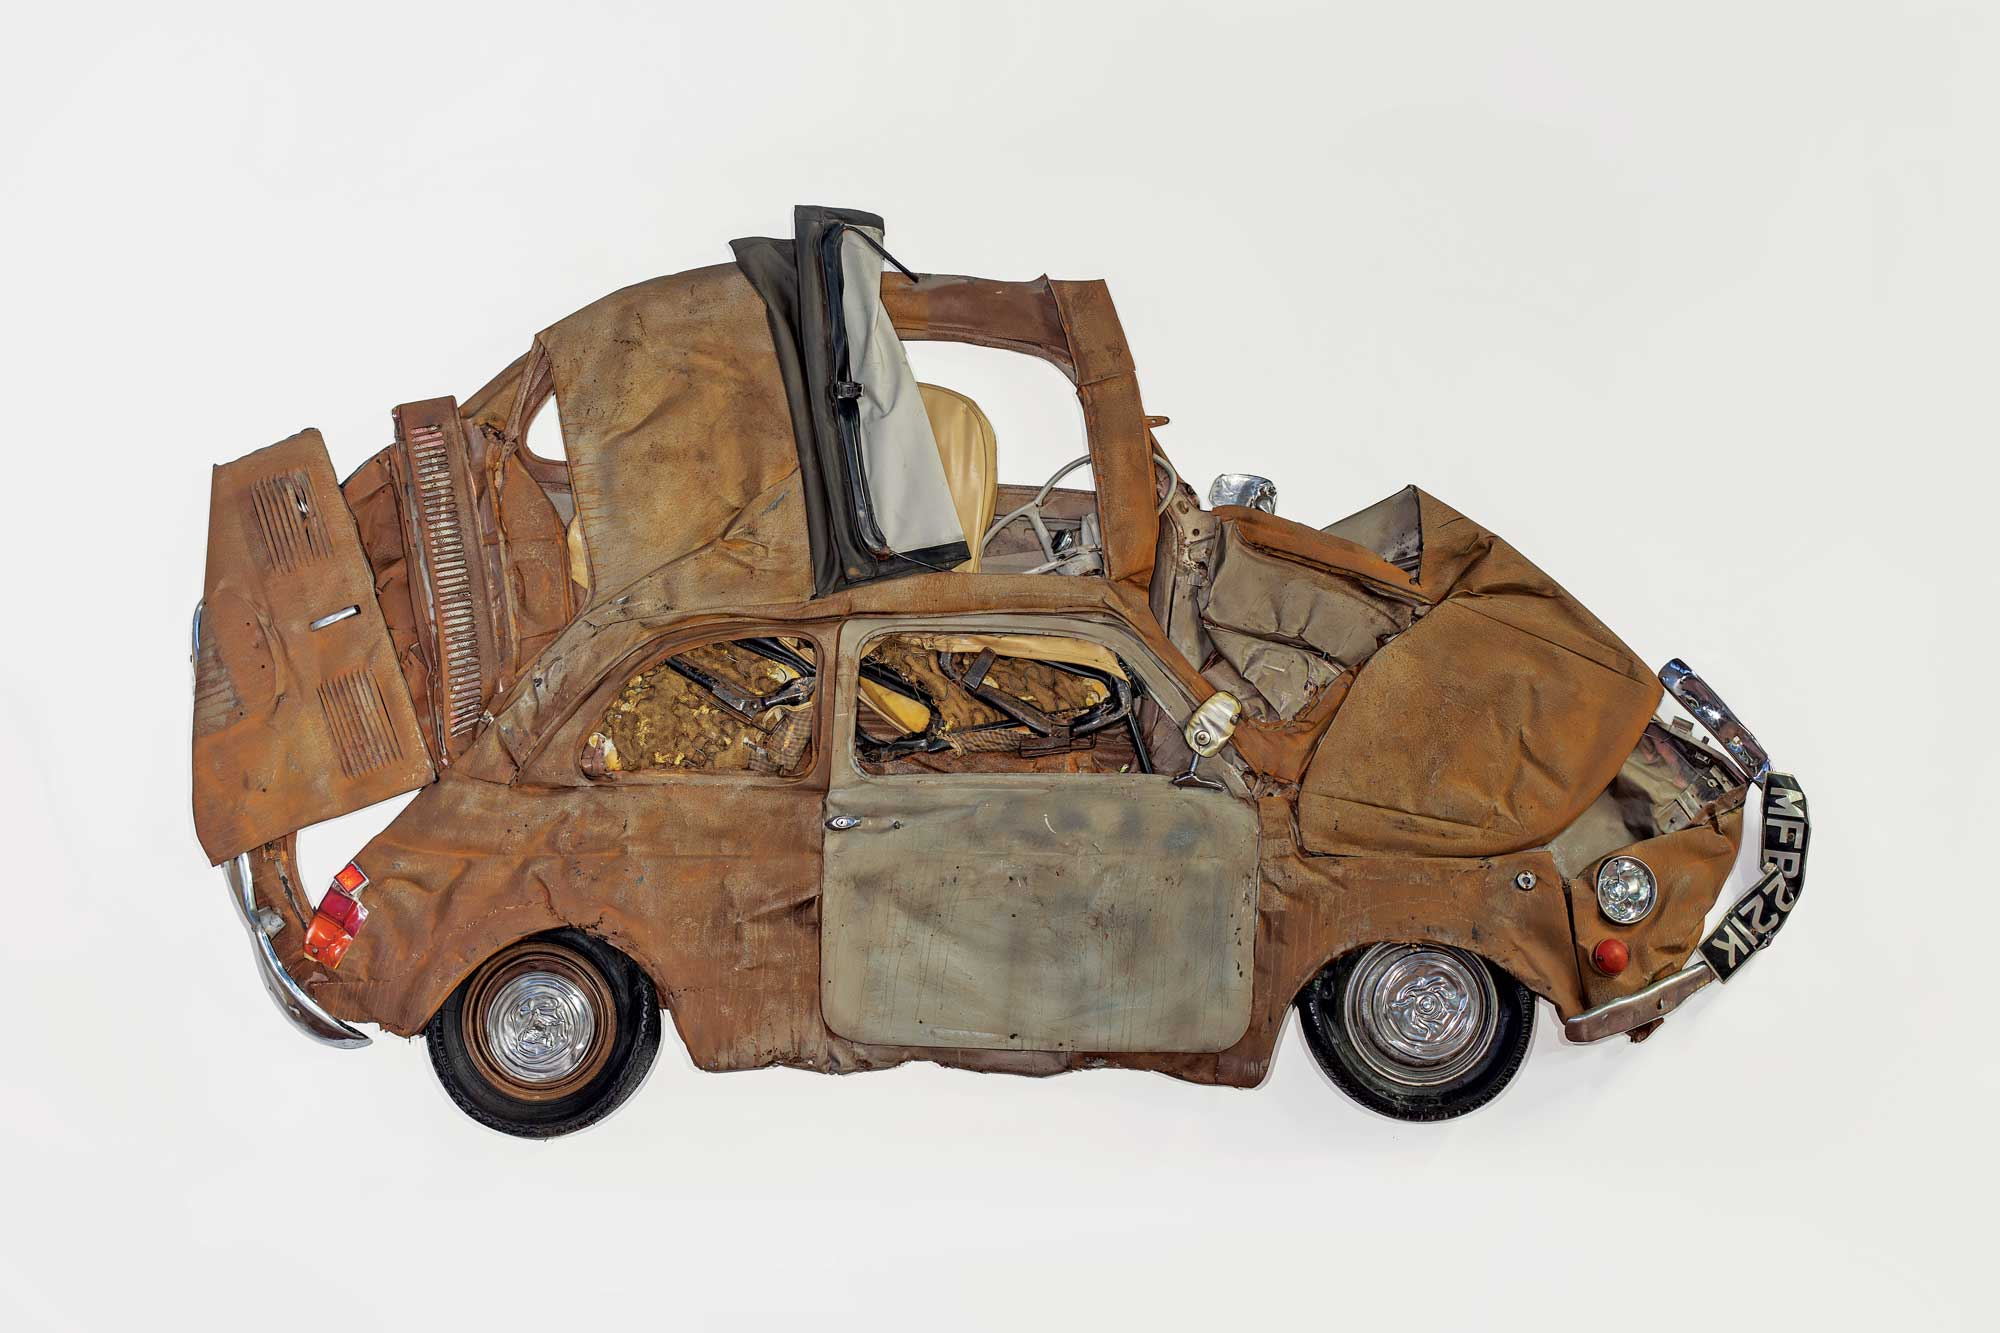 Ron Arad's Brown Flattened Fiat Car Sculpture